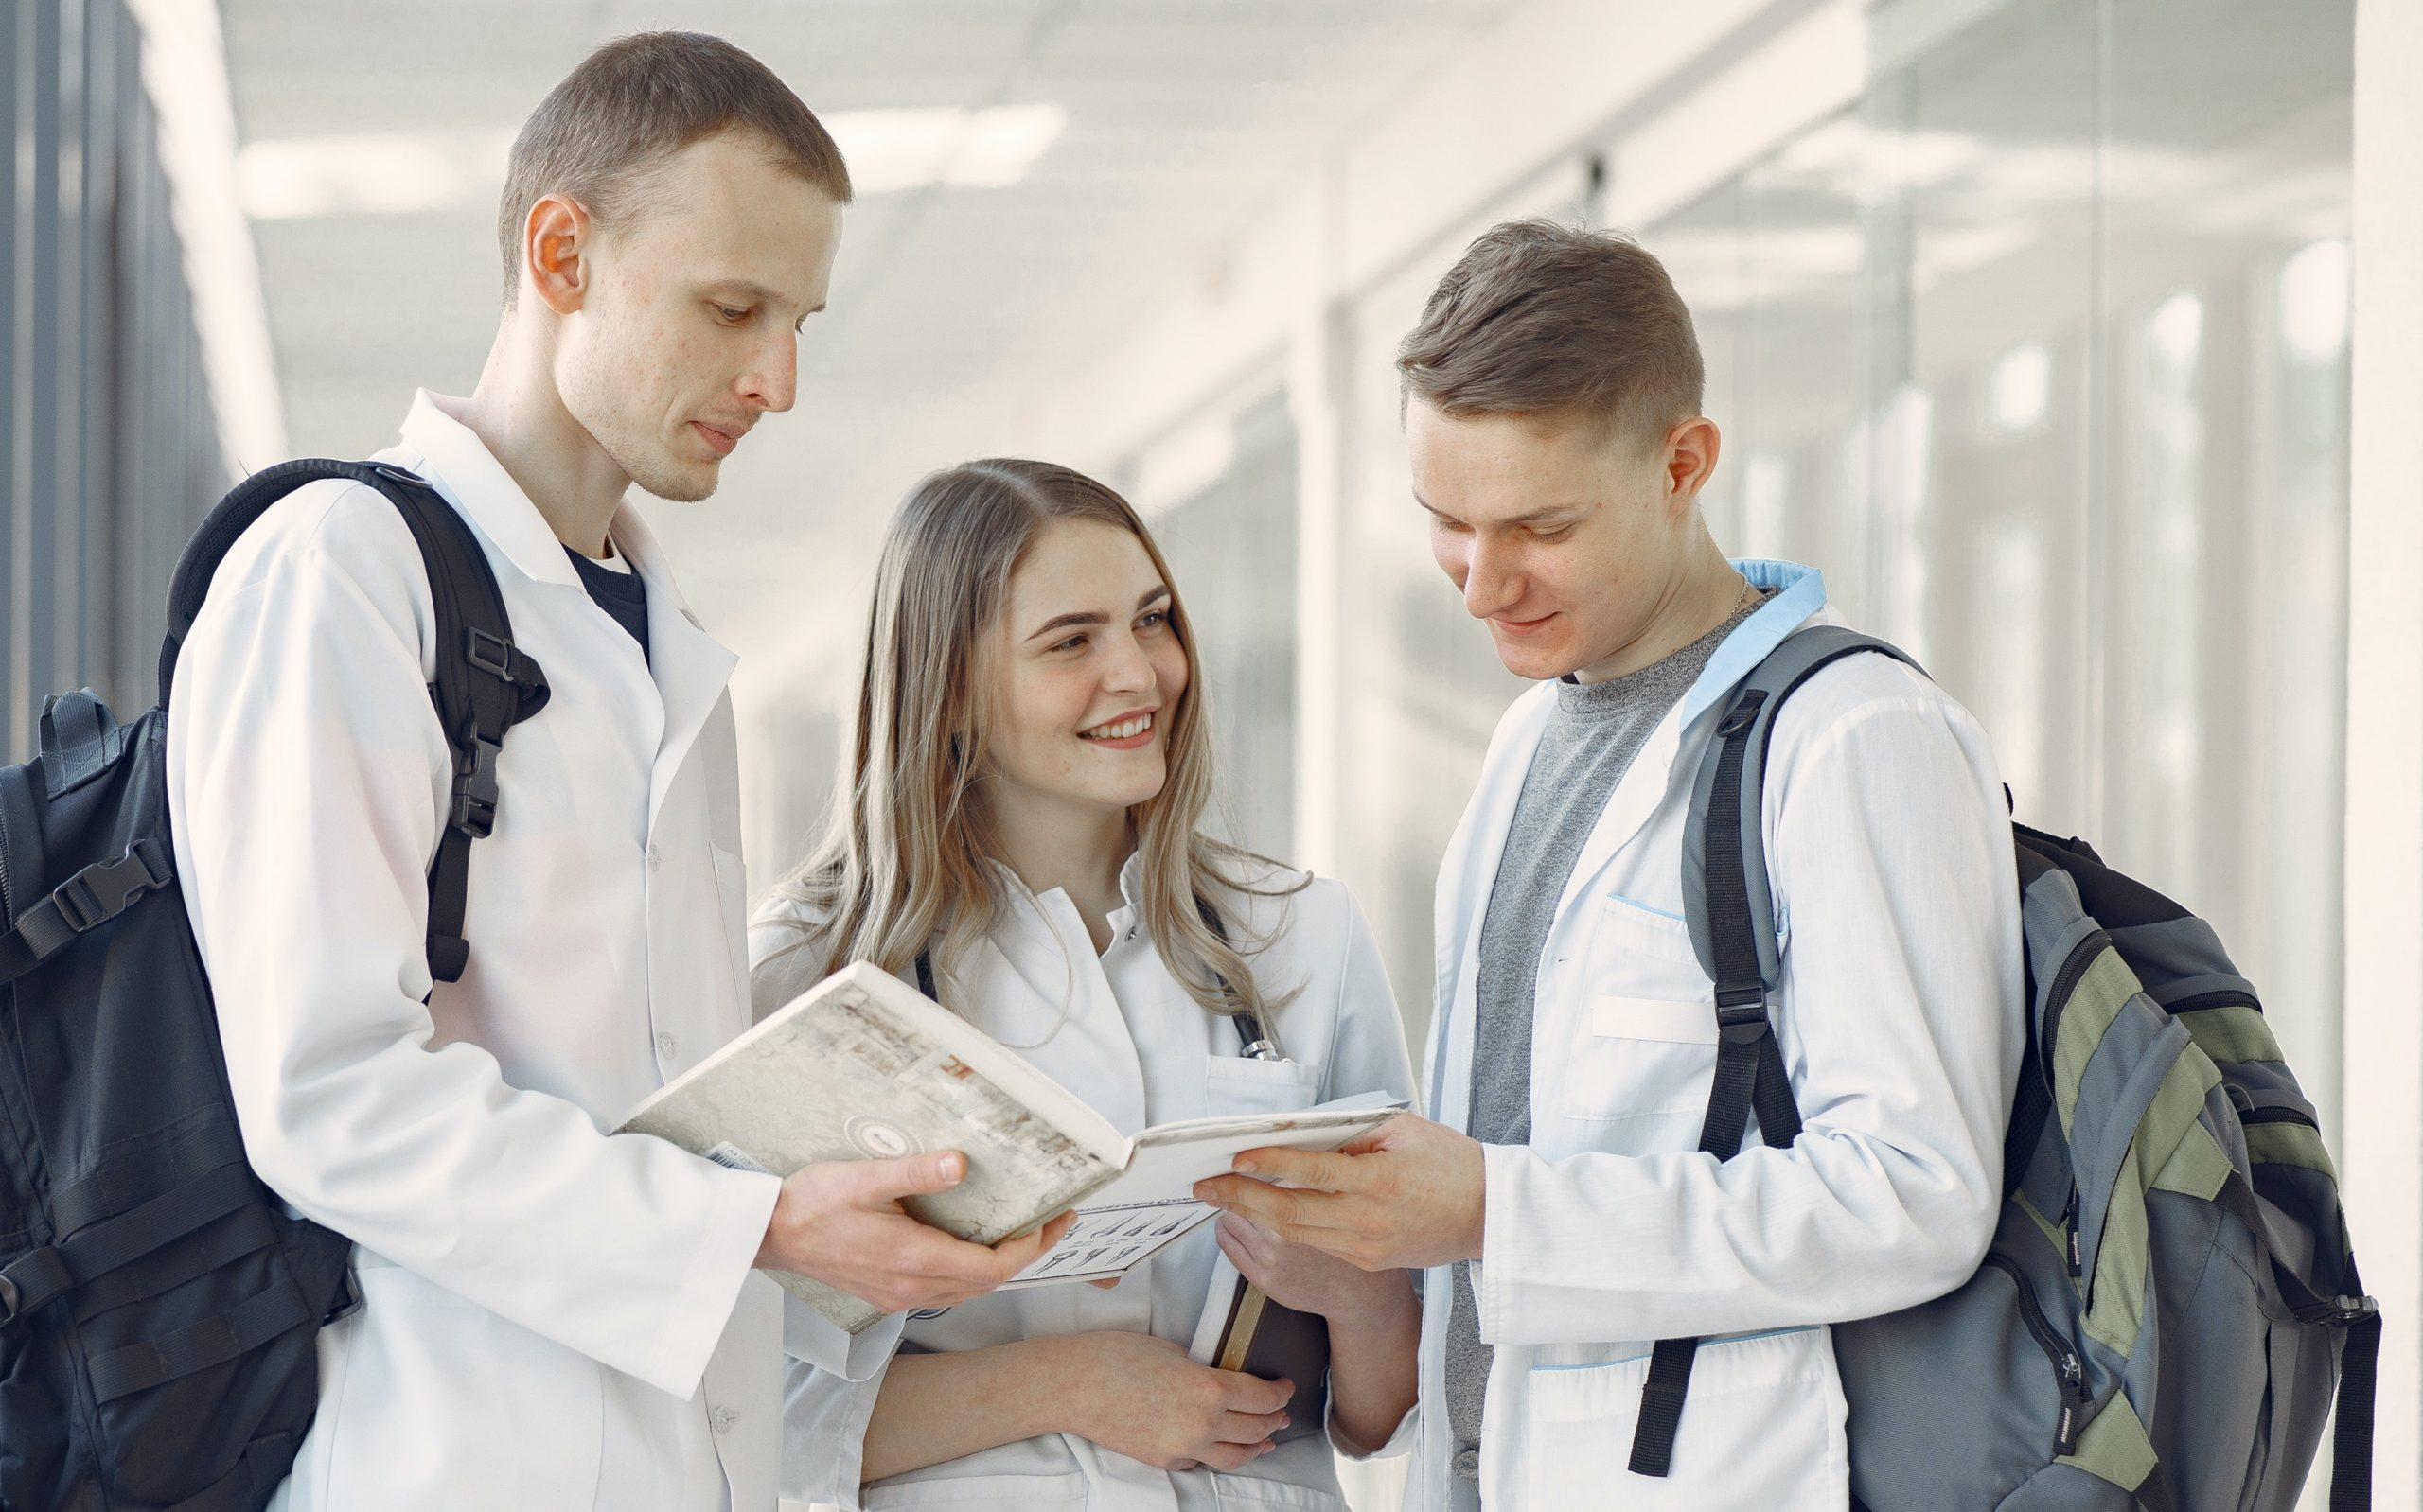 group-of-medical-students-at-the-hallway-3985162crop